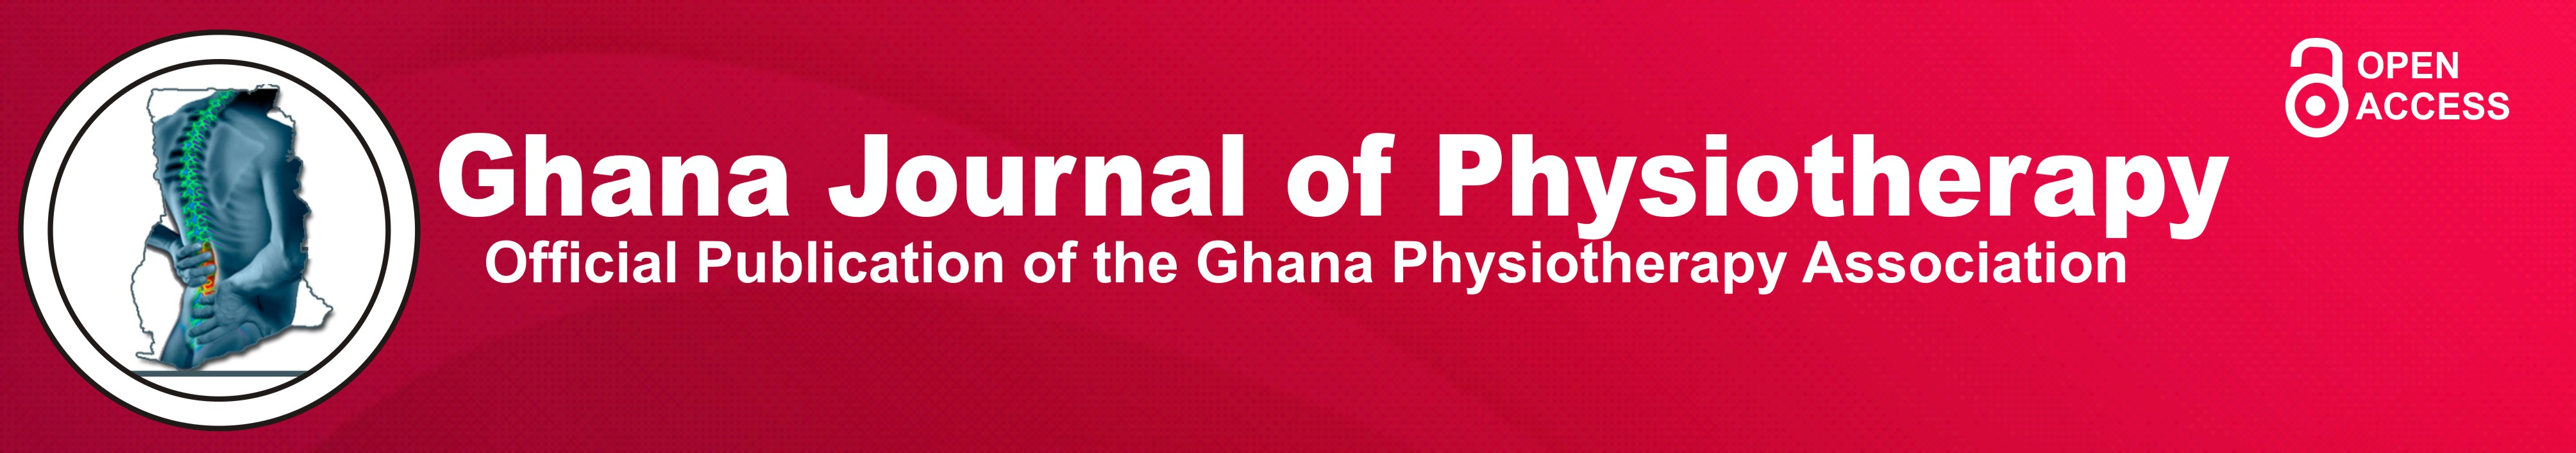 Ghana Journal of Physiotherapy